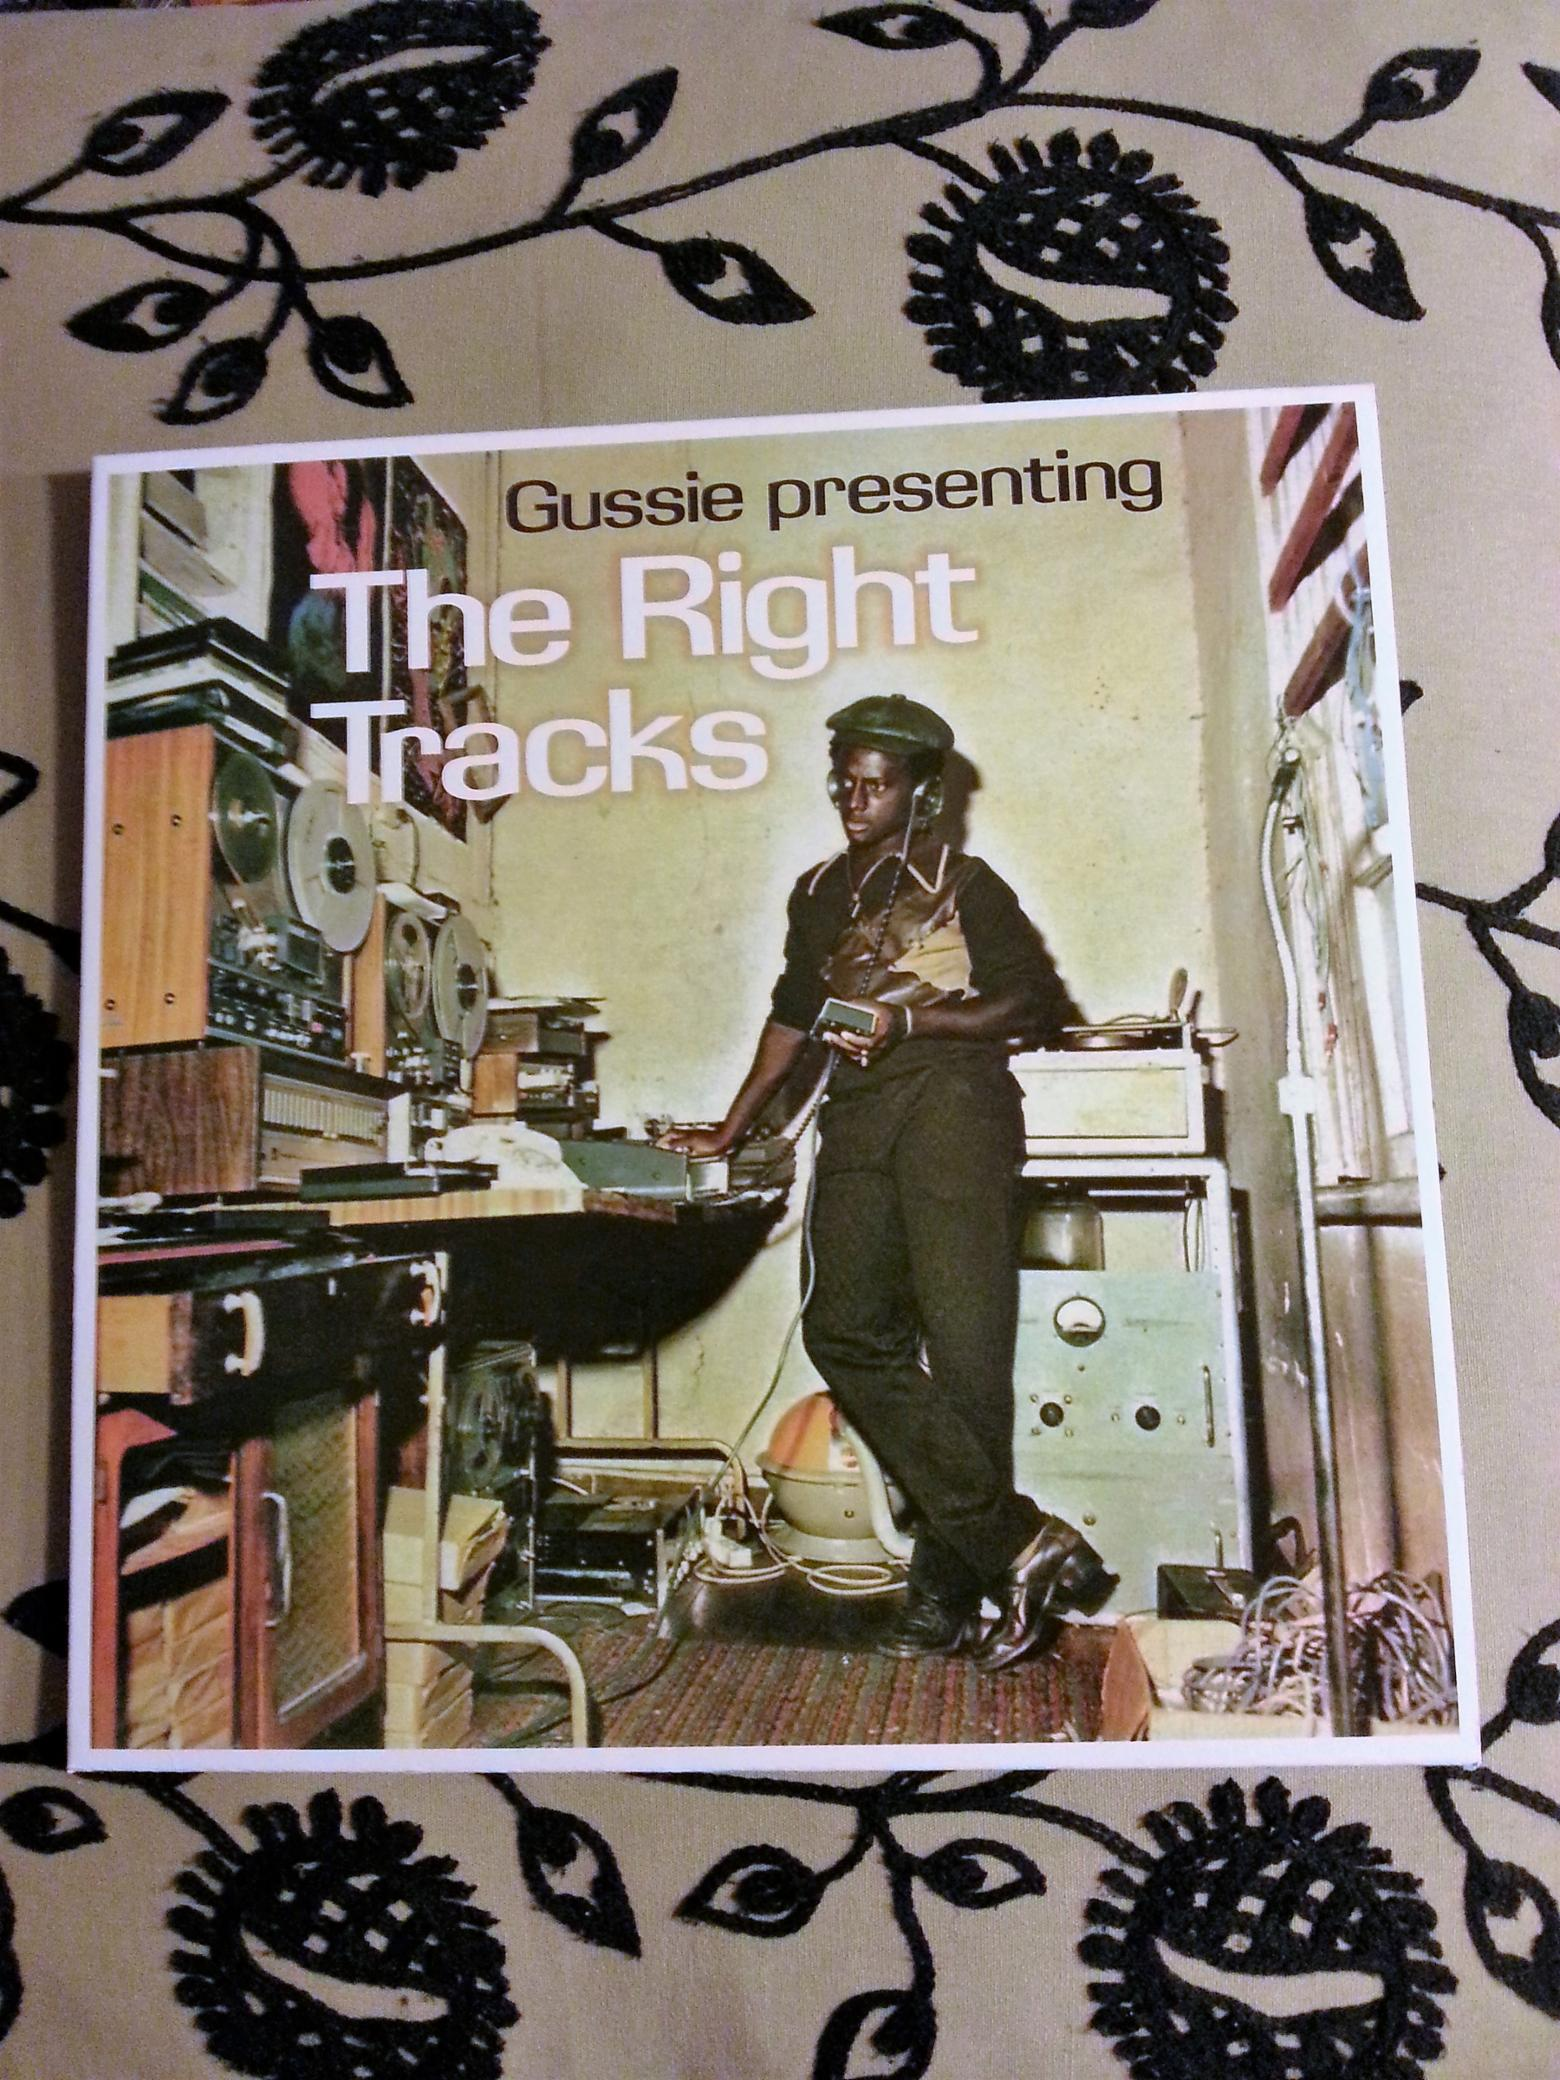 THE RIGHT TRACKS